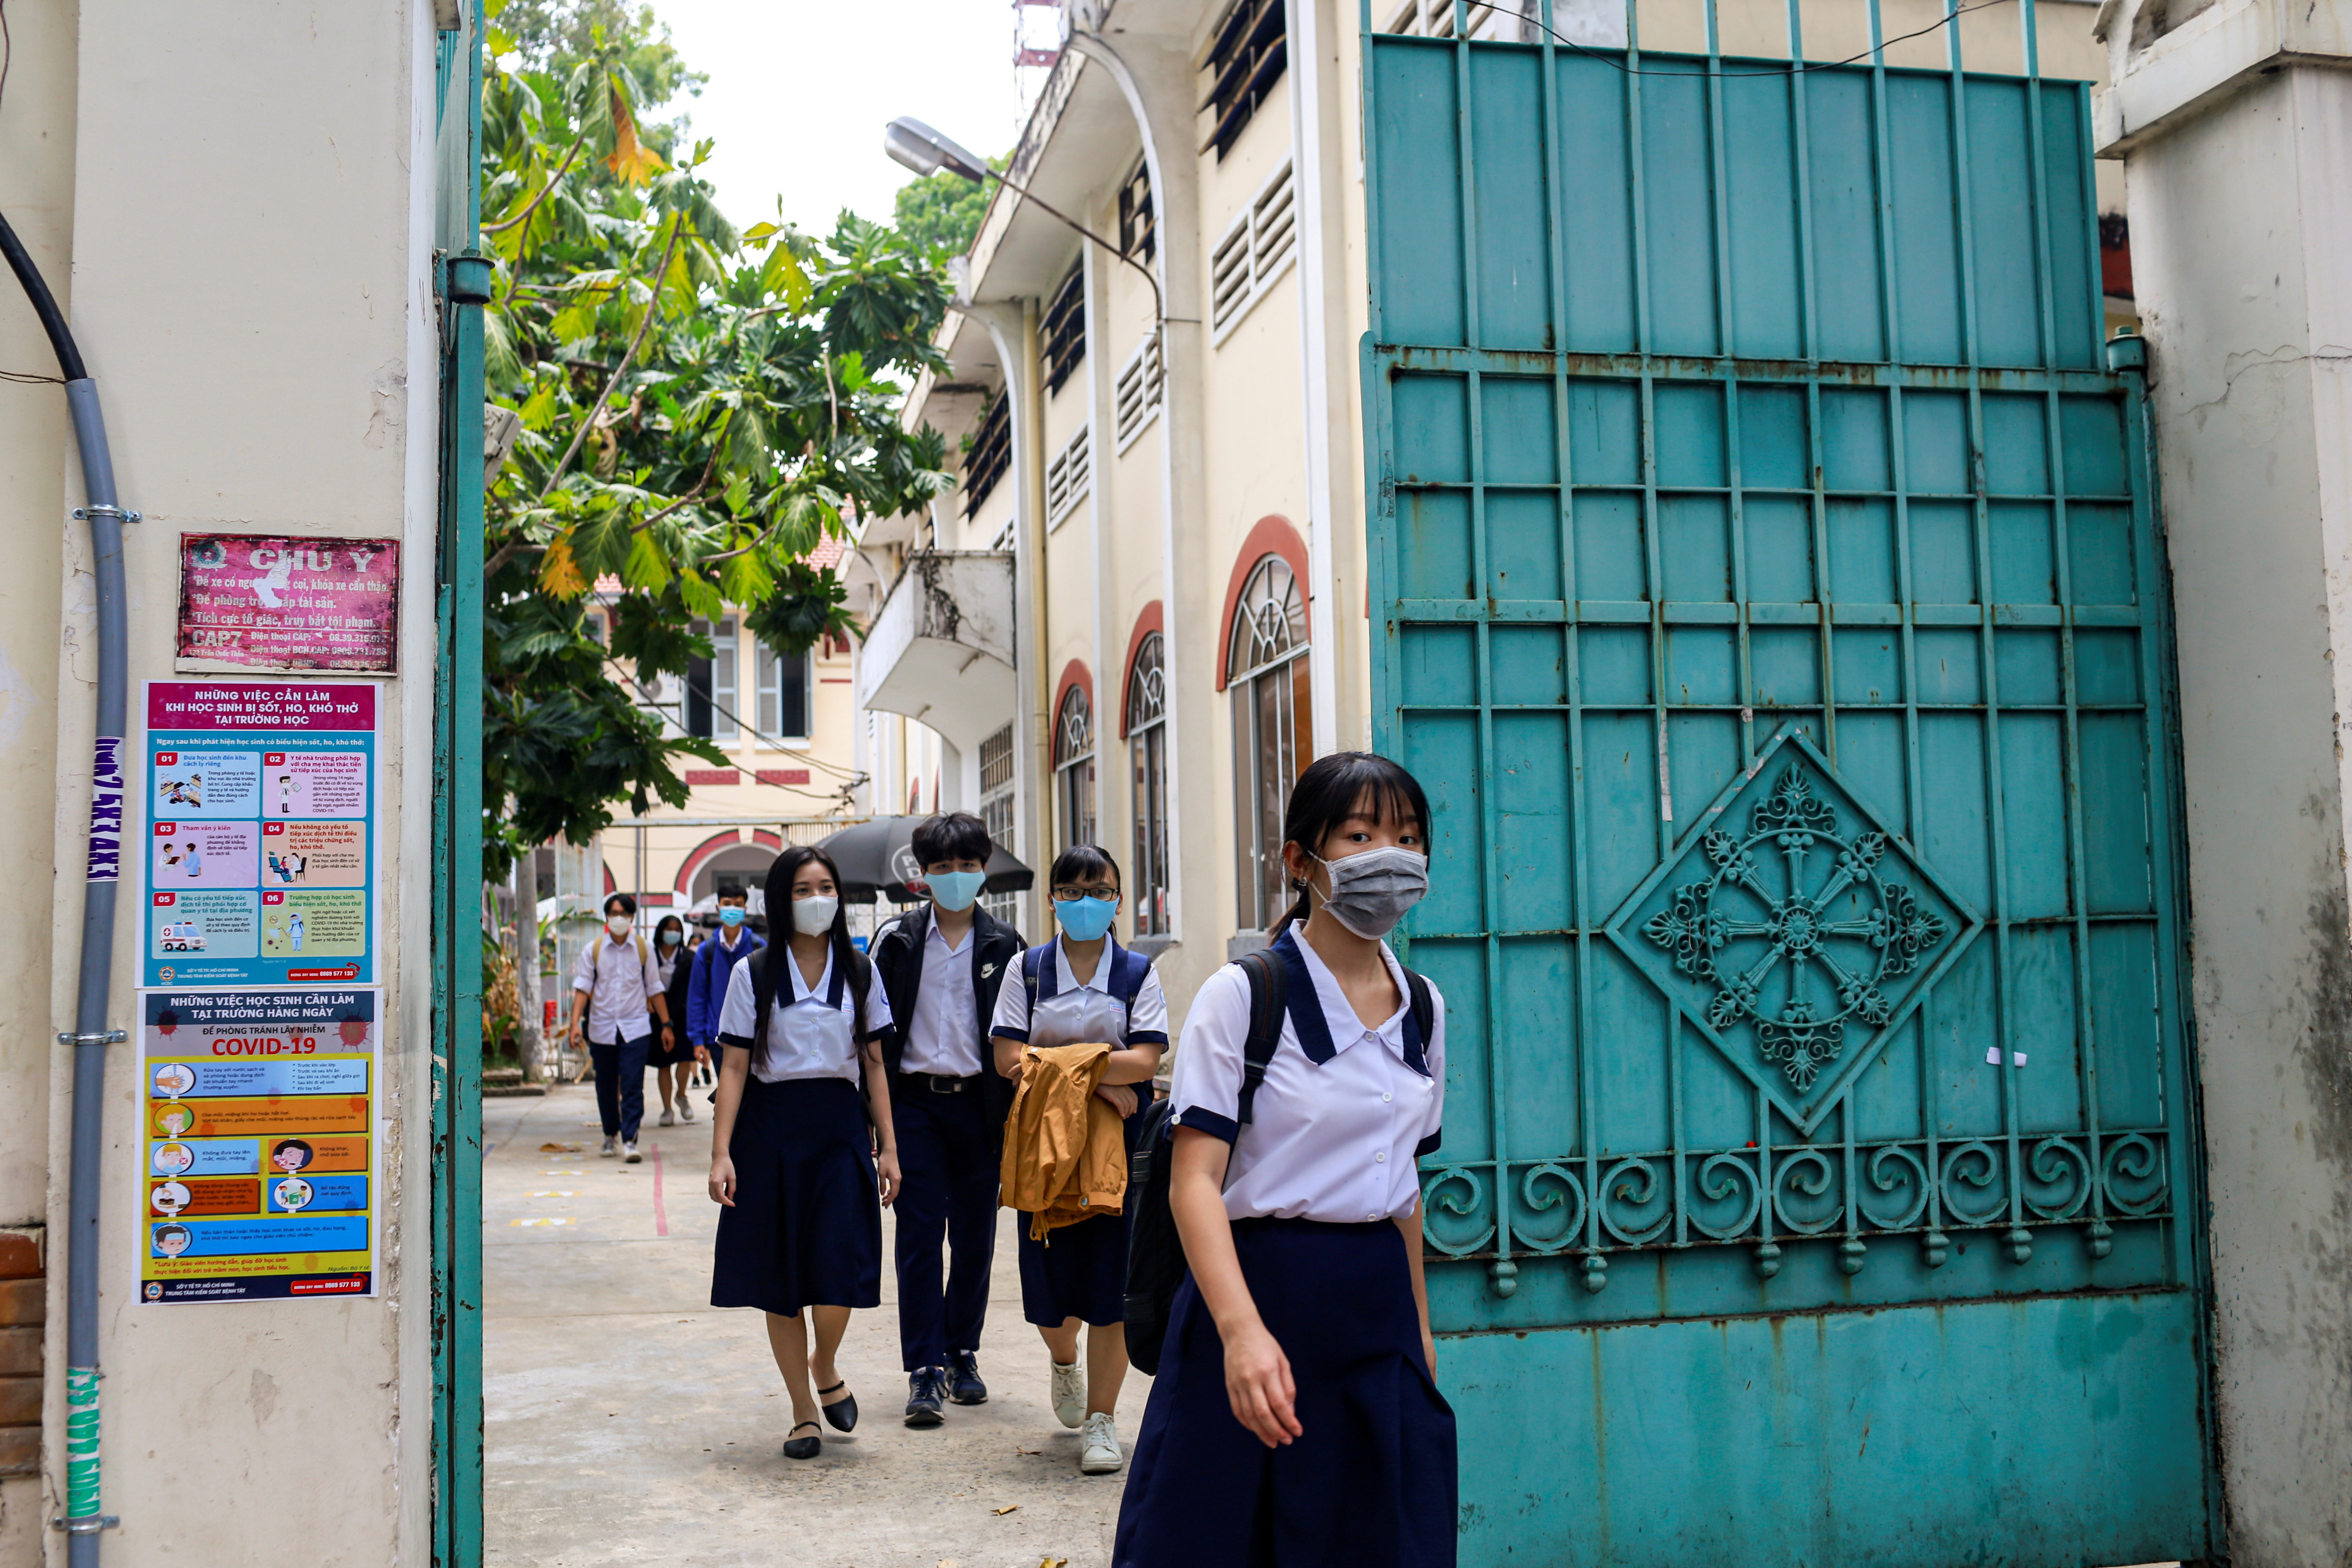 High school students leave their first day of class after the government eased nationwide lockdown during the coronavirus disease (COVID-19) outbreak in Ho Chi Minh, Vietnam May 5, 2020. REUTERS/Yen Duong